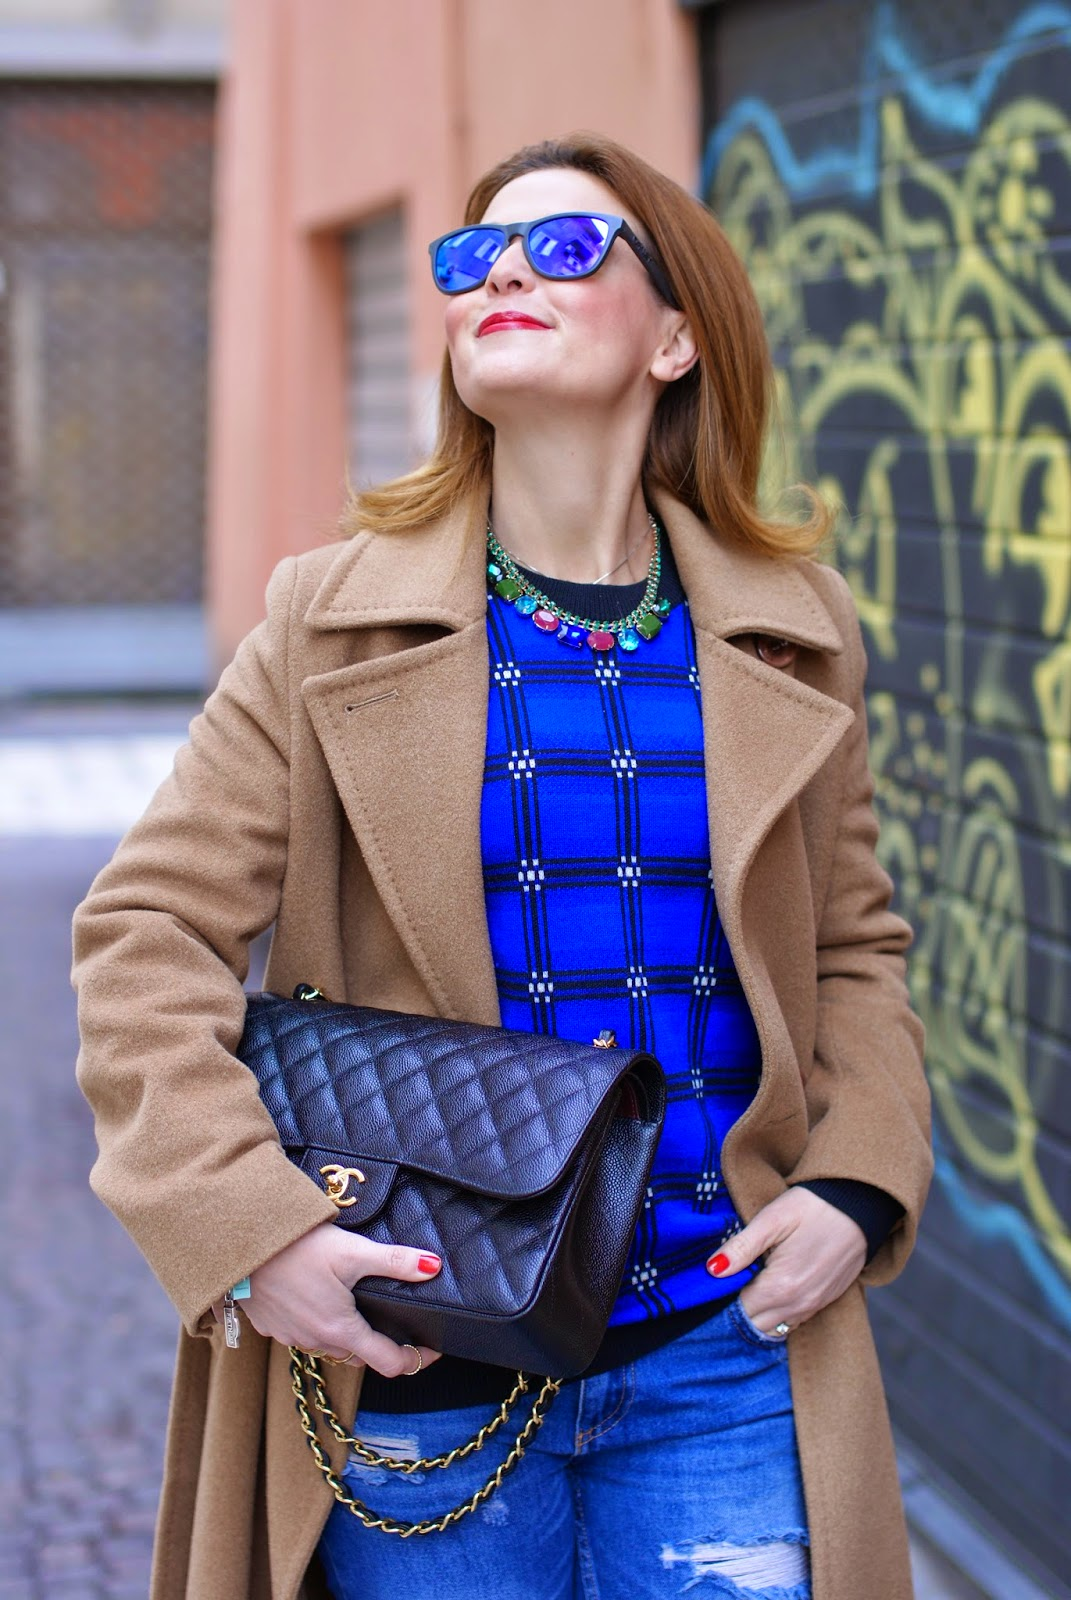 Max Mara camel belted wool coat and Chanel 2.55 classic flap bag on fashion blogger Vale on Fashion and Cookies fashion blog